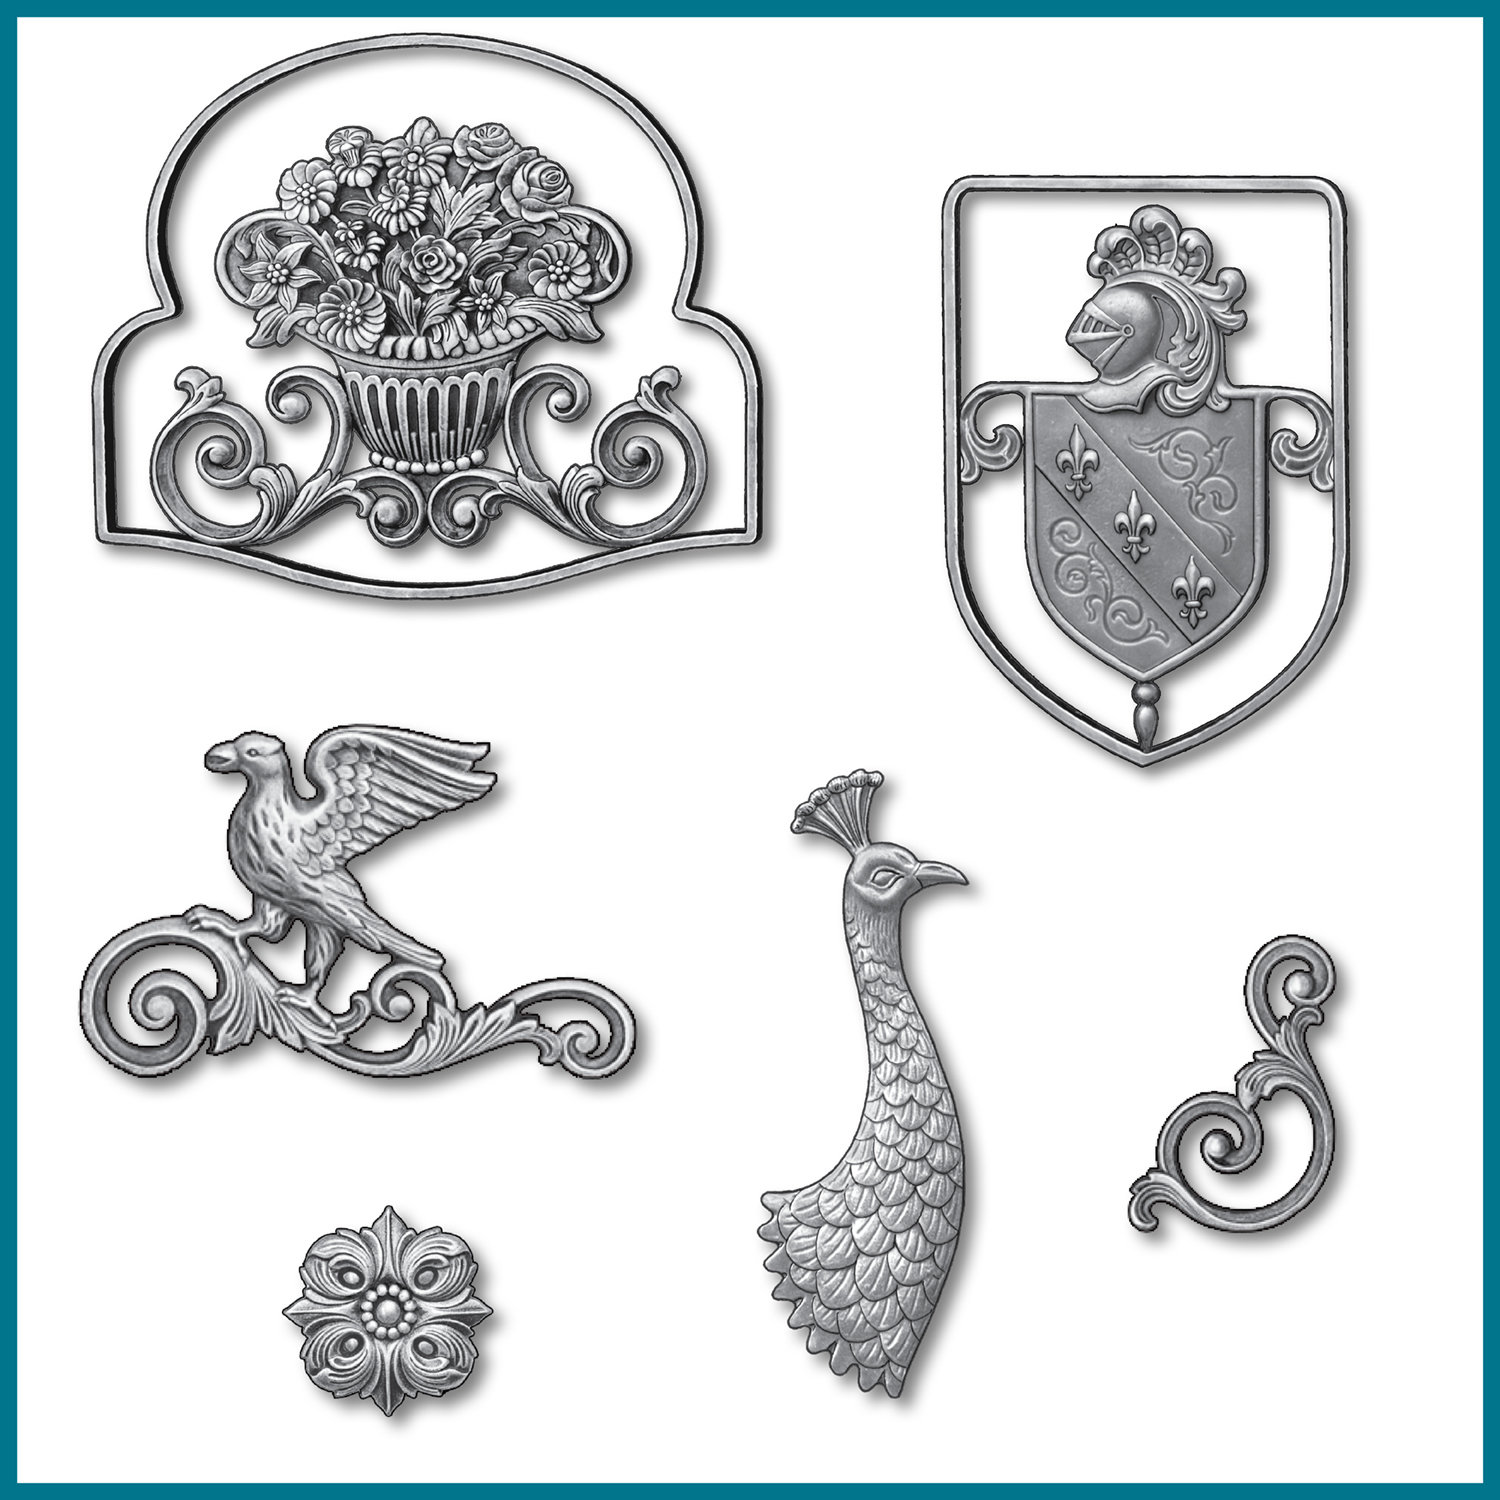 Decorative Castings by Grande Forge